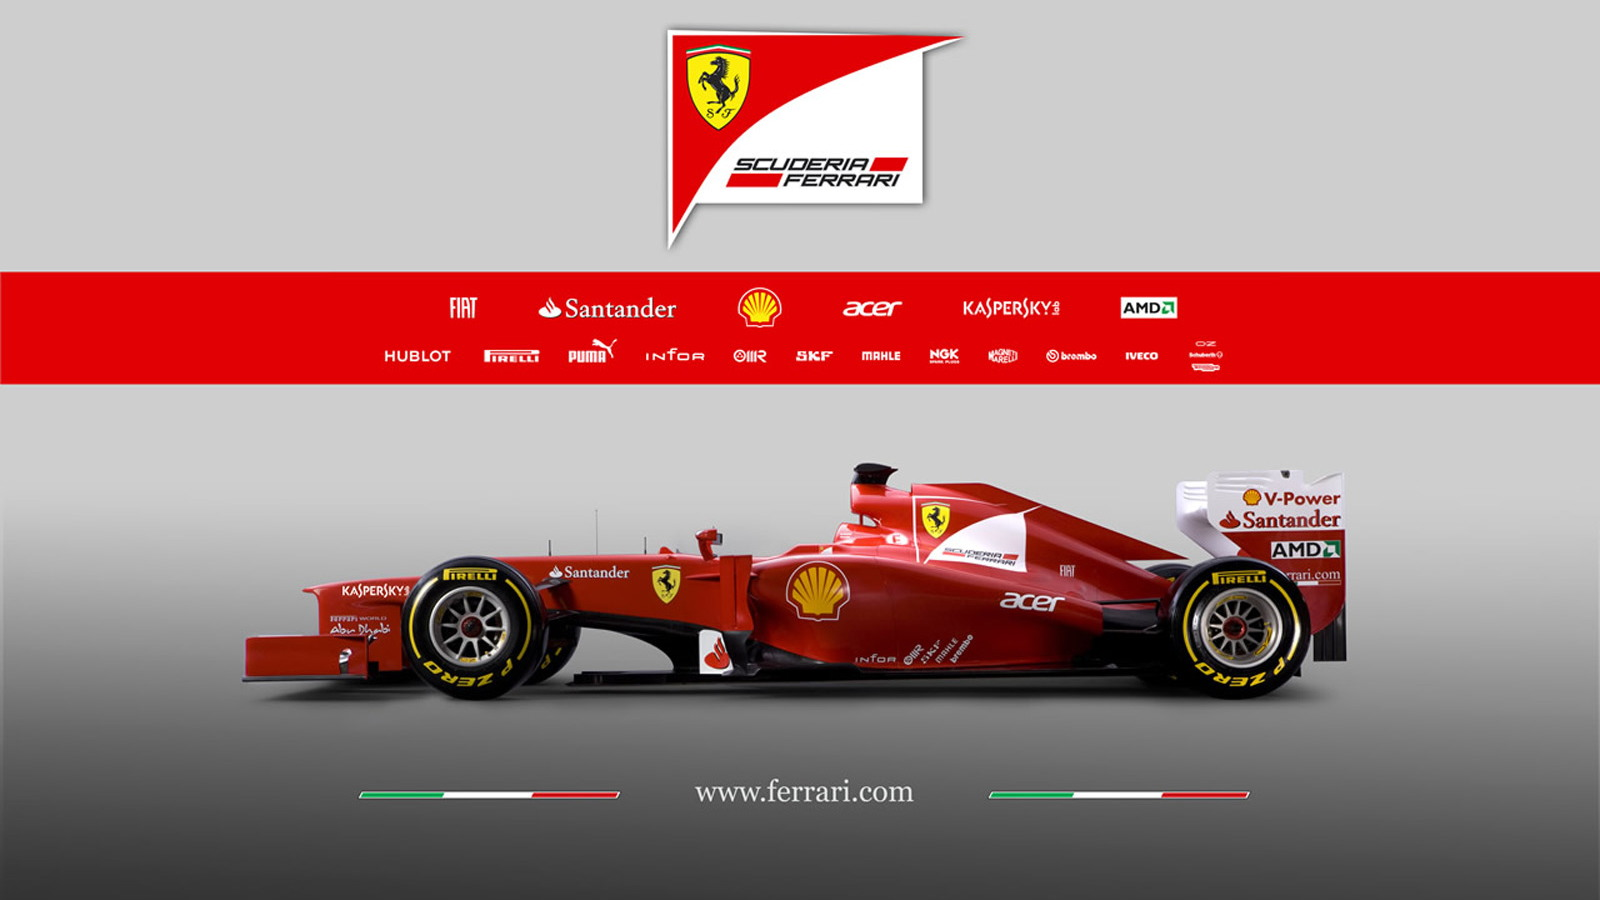 Ferrari F2012 2012 Formula 1 race car